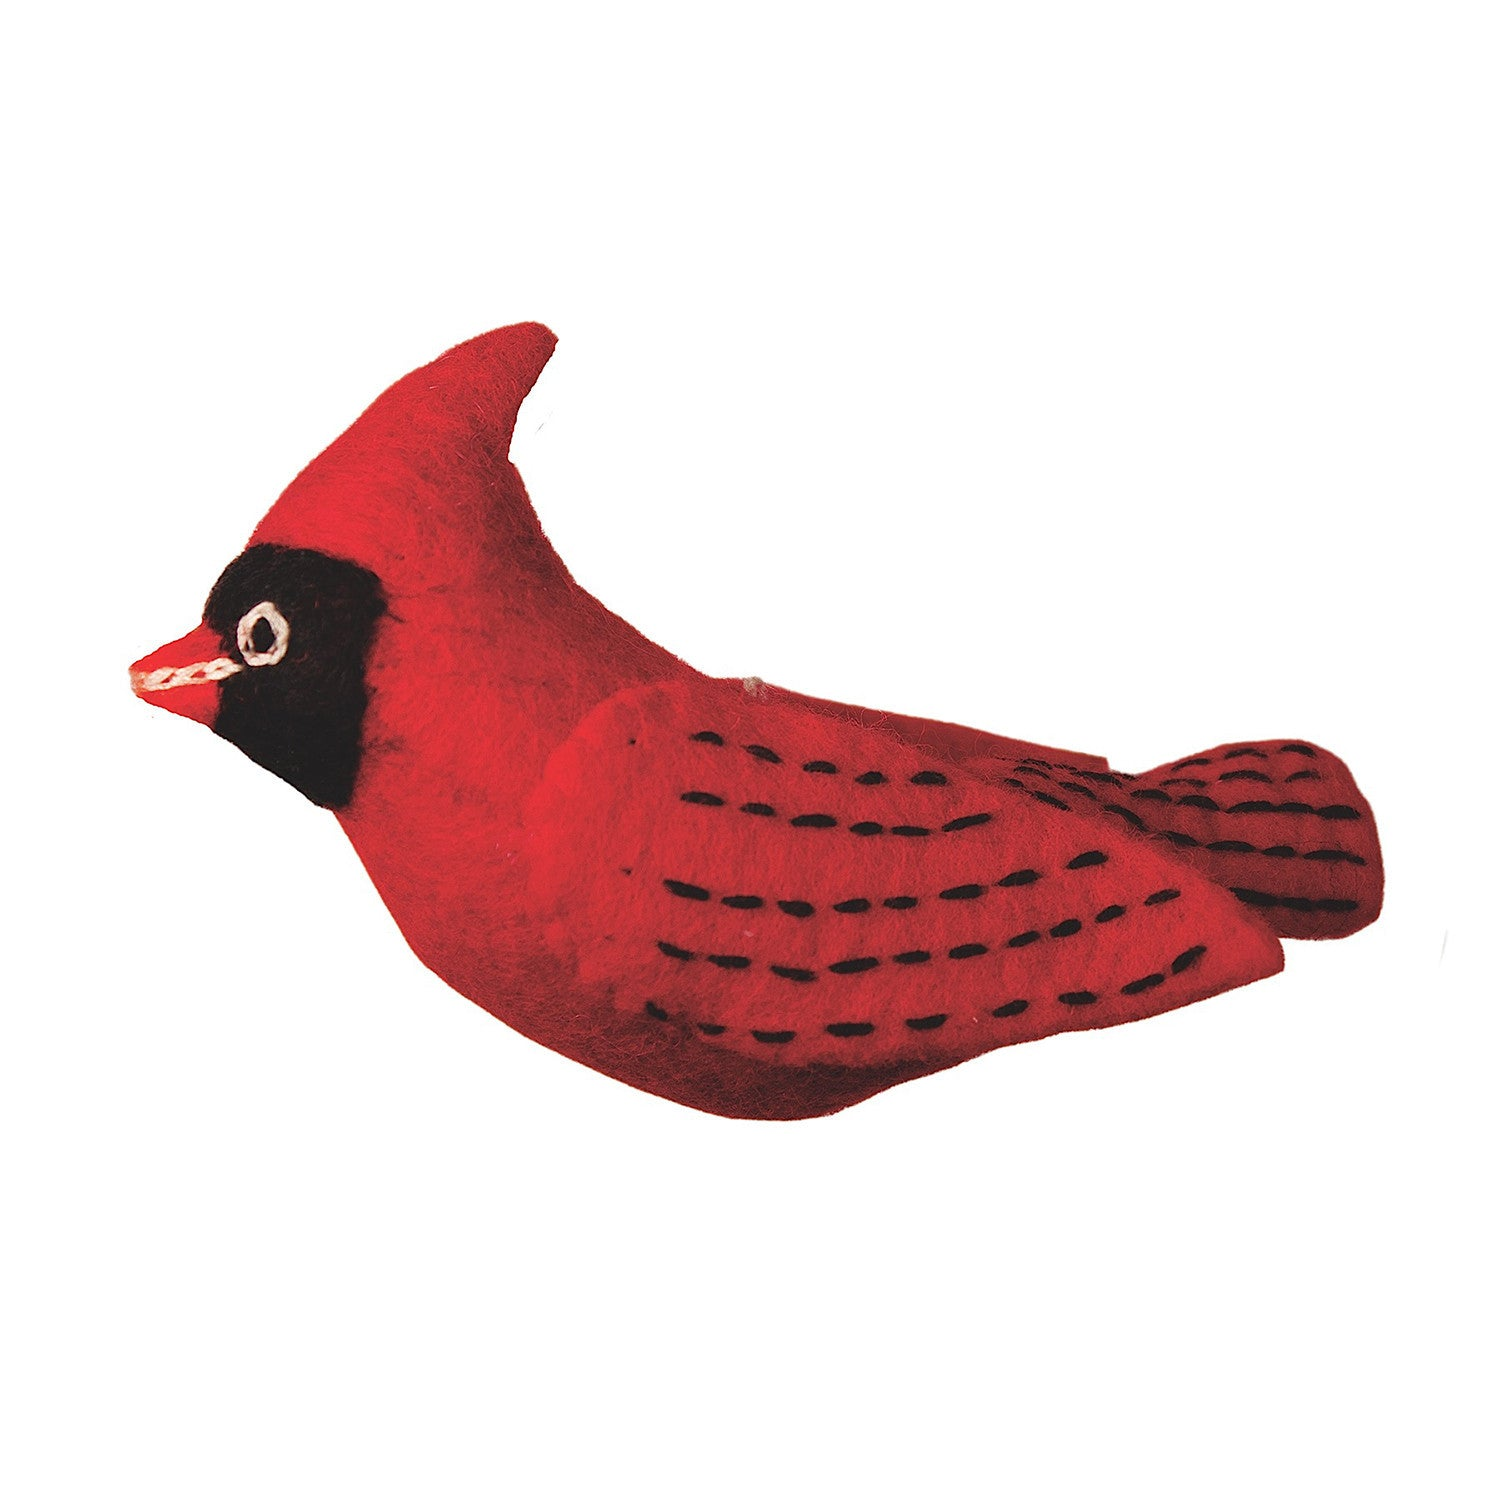 Felt Bird Garden Ornament - Cardinal Handmade and Fair Trade